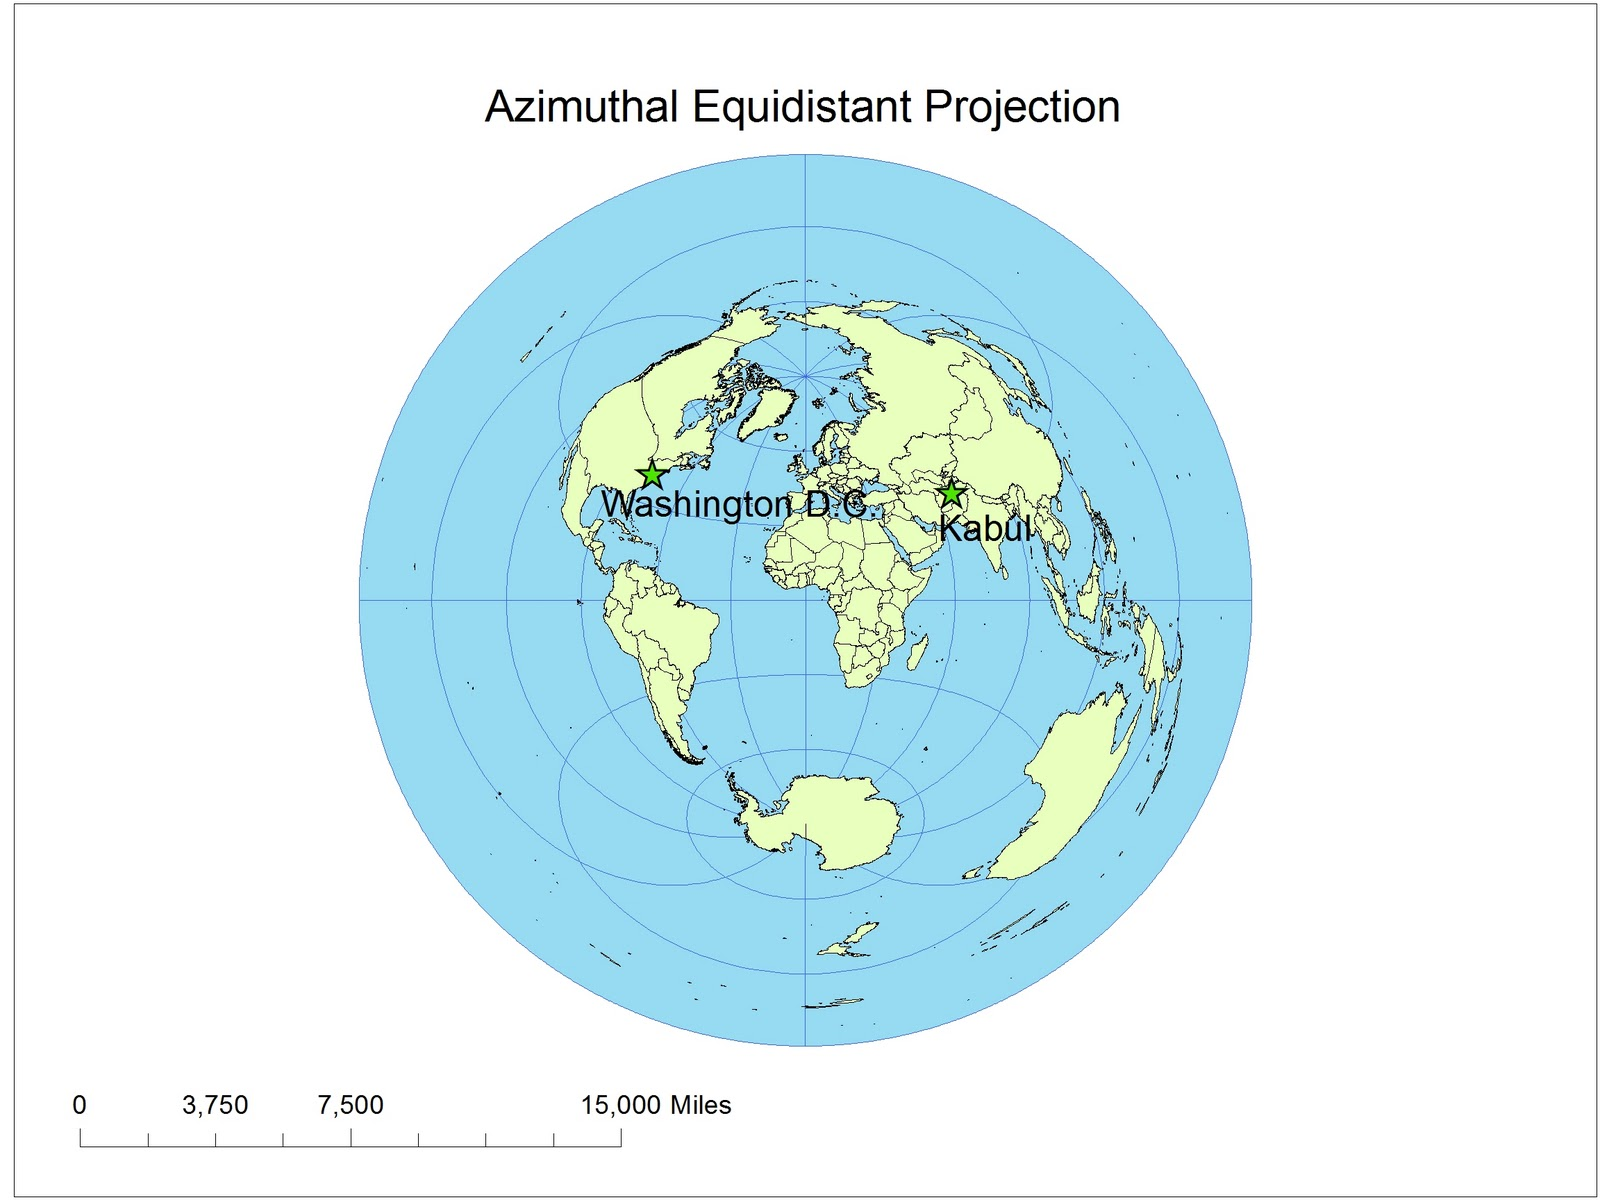 azimuthal equidistant projection Epsg:102016 projected coordinate system [degree,0017453292519943295]], projection[azimuthal_equidistant], parameter[false_easting,0.